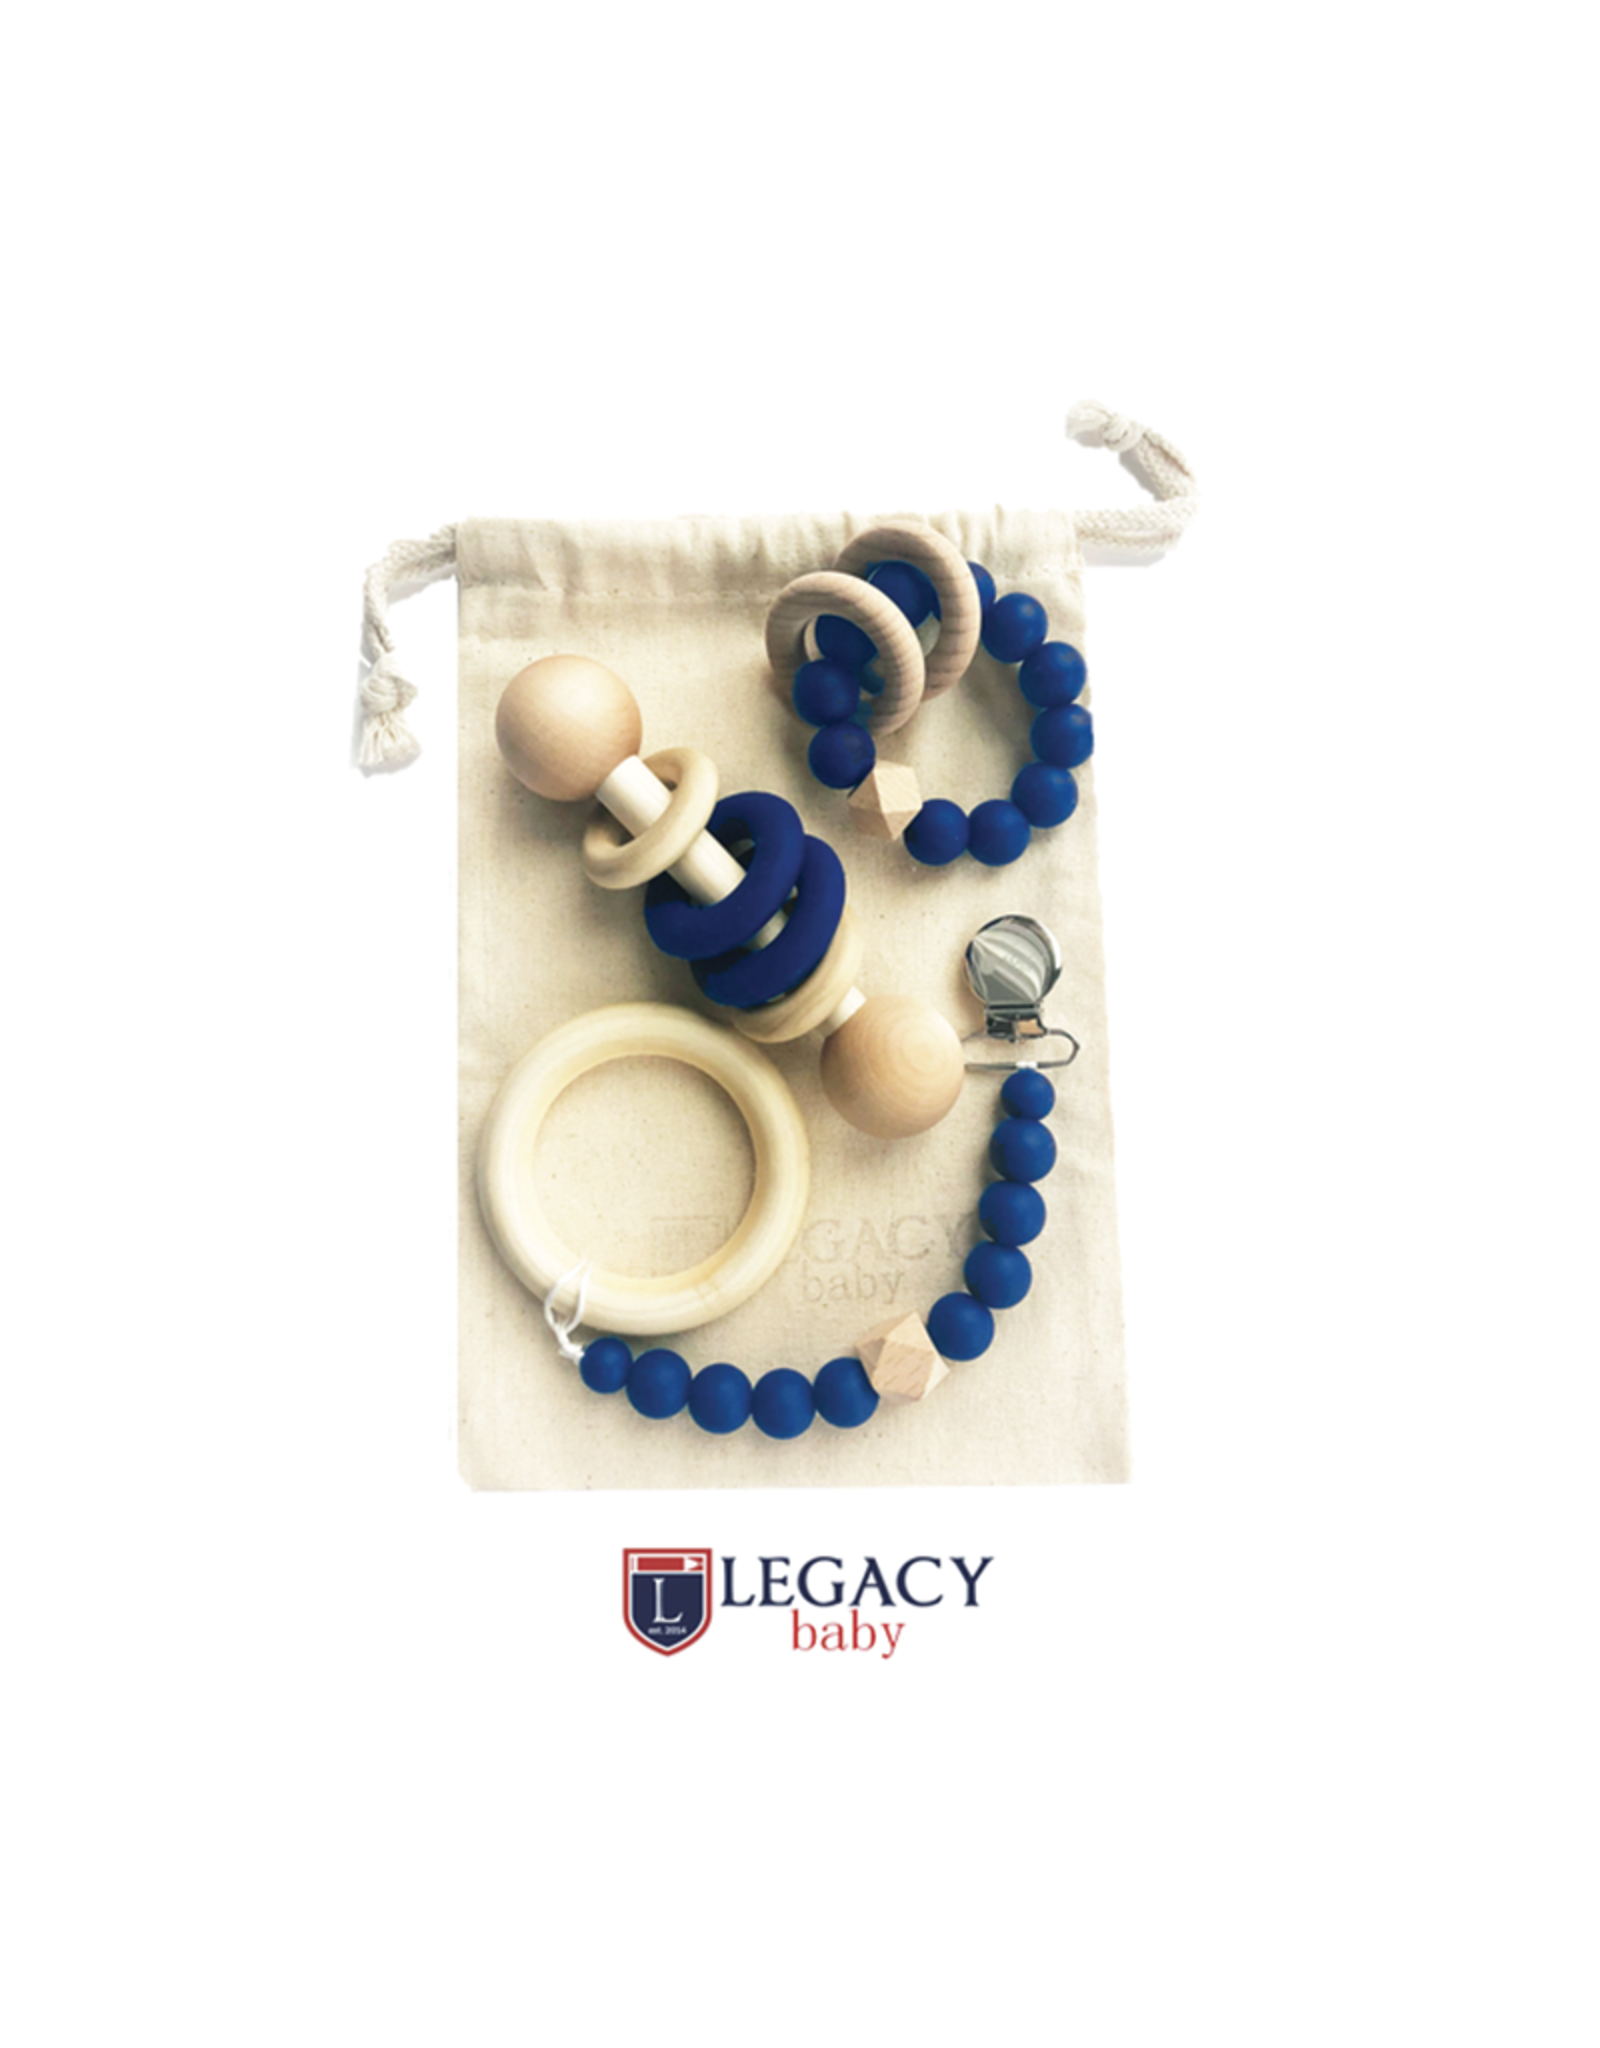 Legacy Learning Academy New Baby Gift Set, Navy